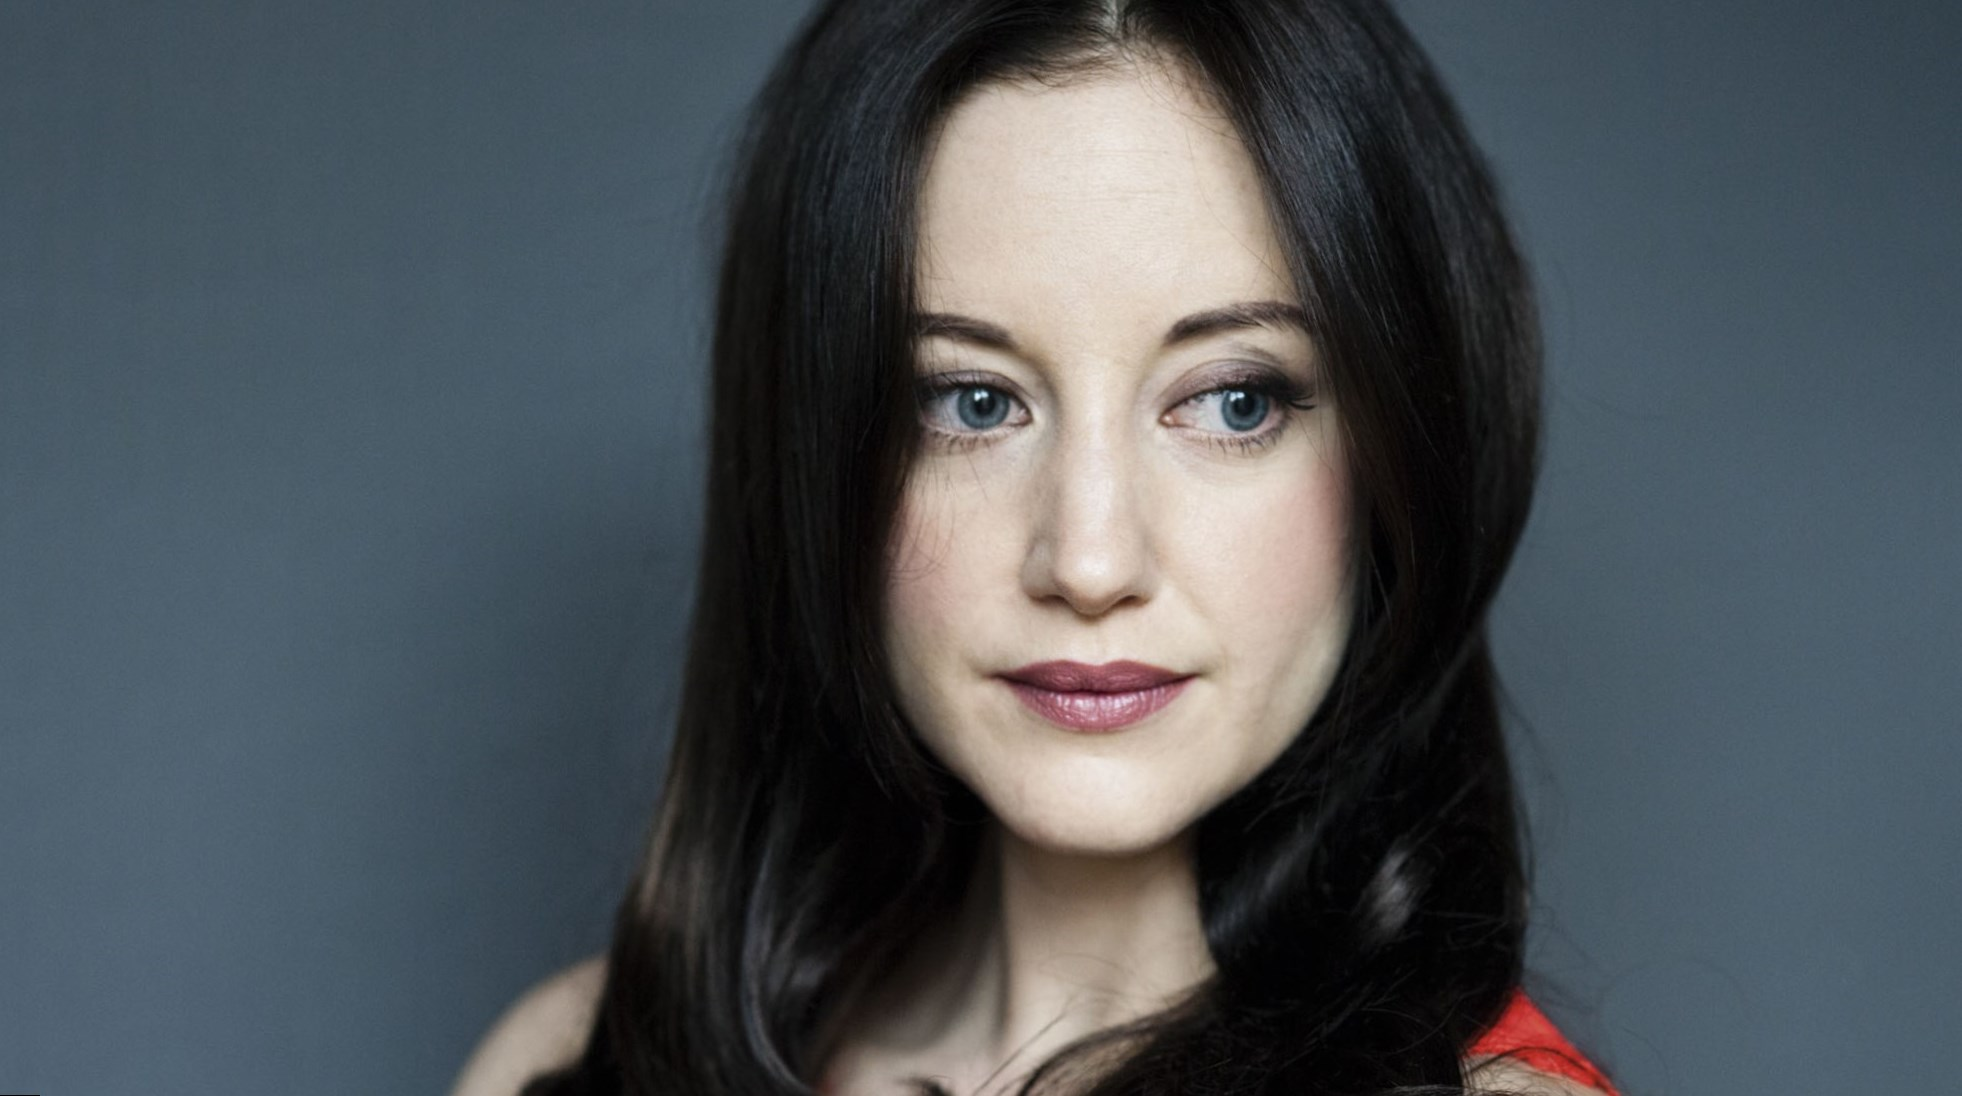 Andrea Riseborough net worth